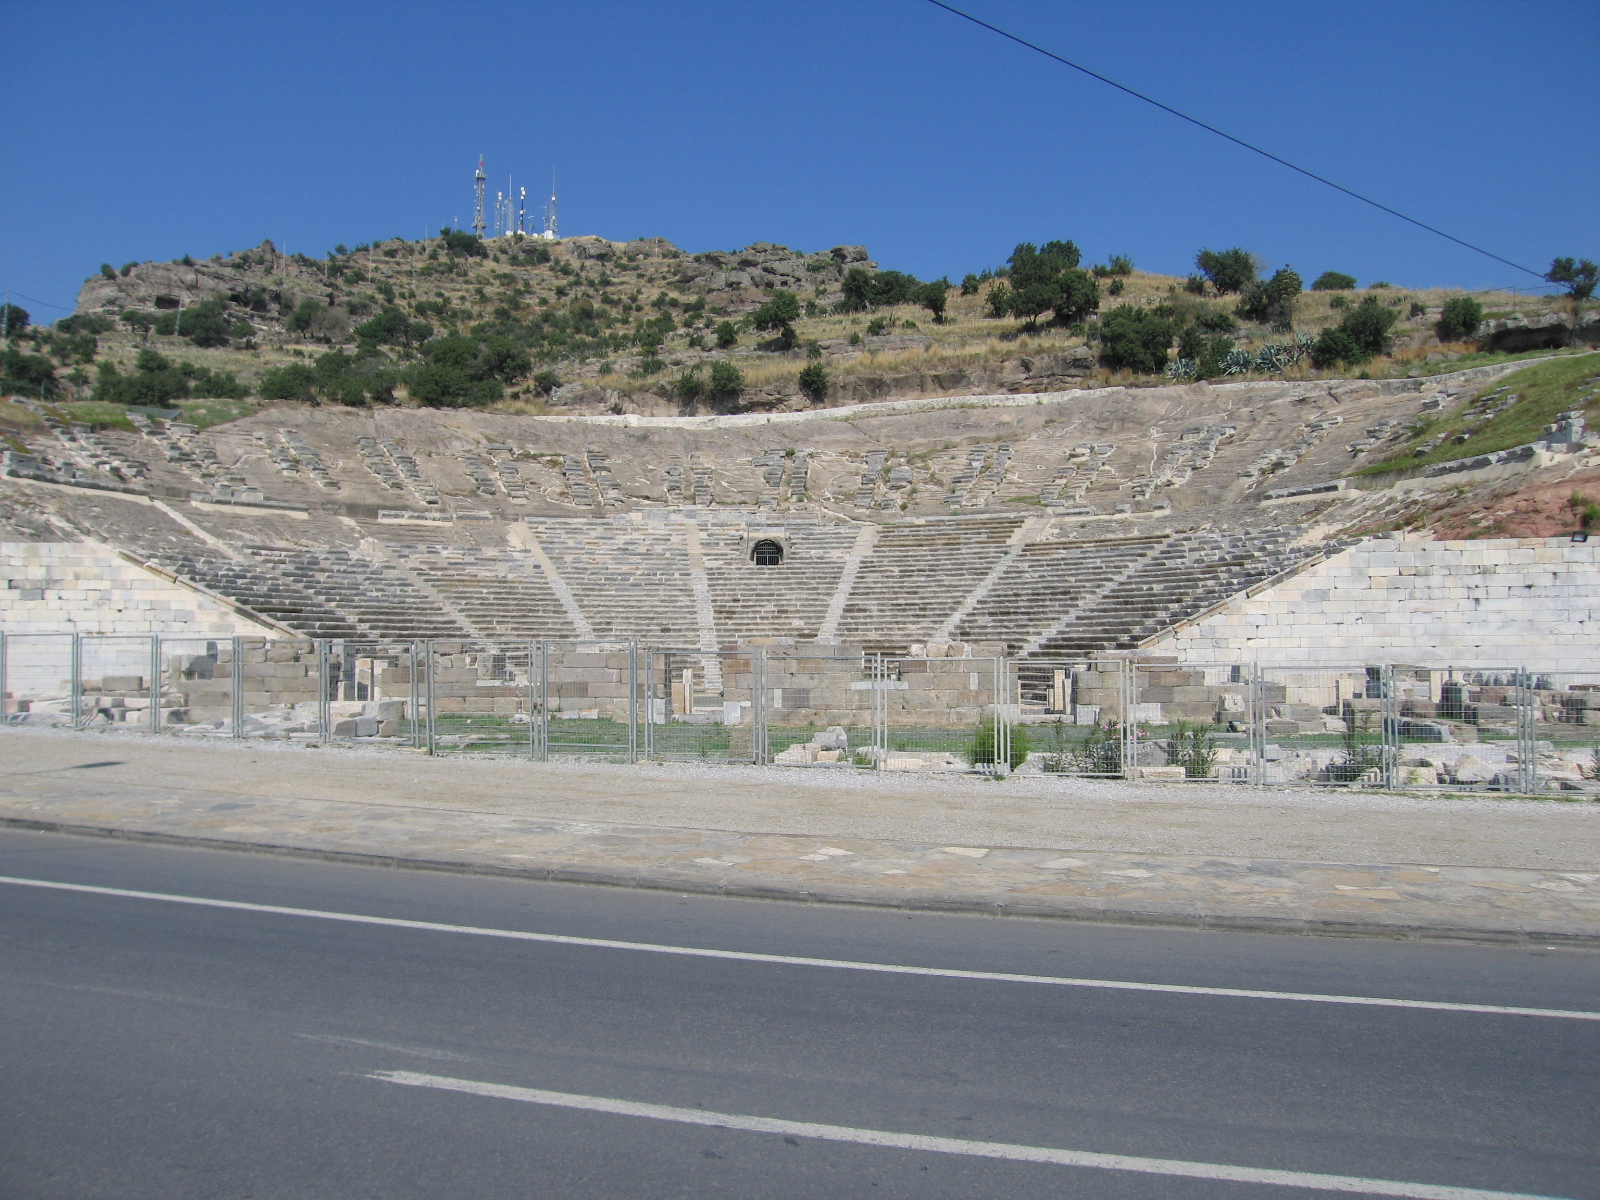 http://upload.wikimedia.org/wikipedia/commons/d/d2/Halicarnassos_Theatre_2008.JPG